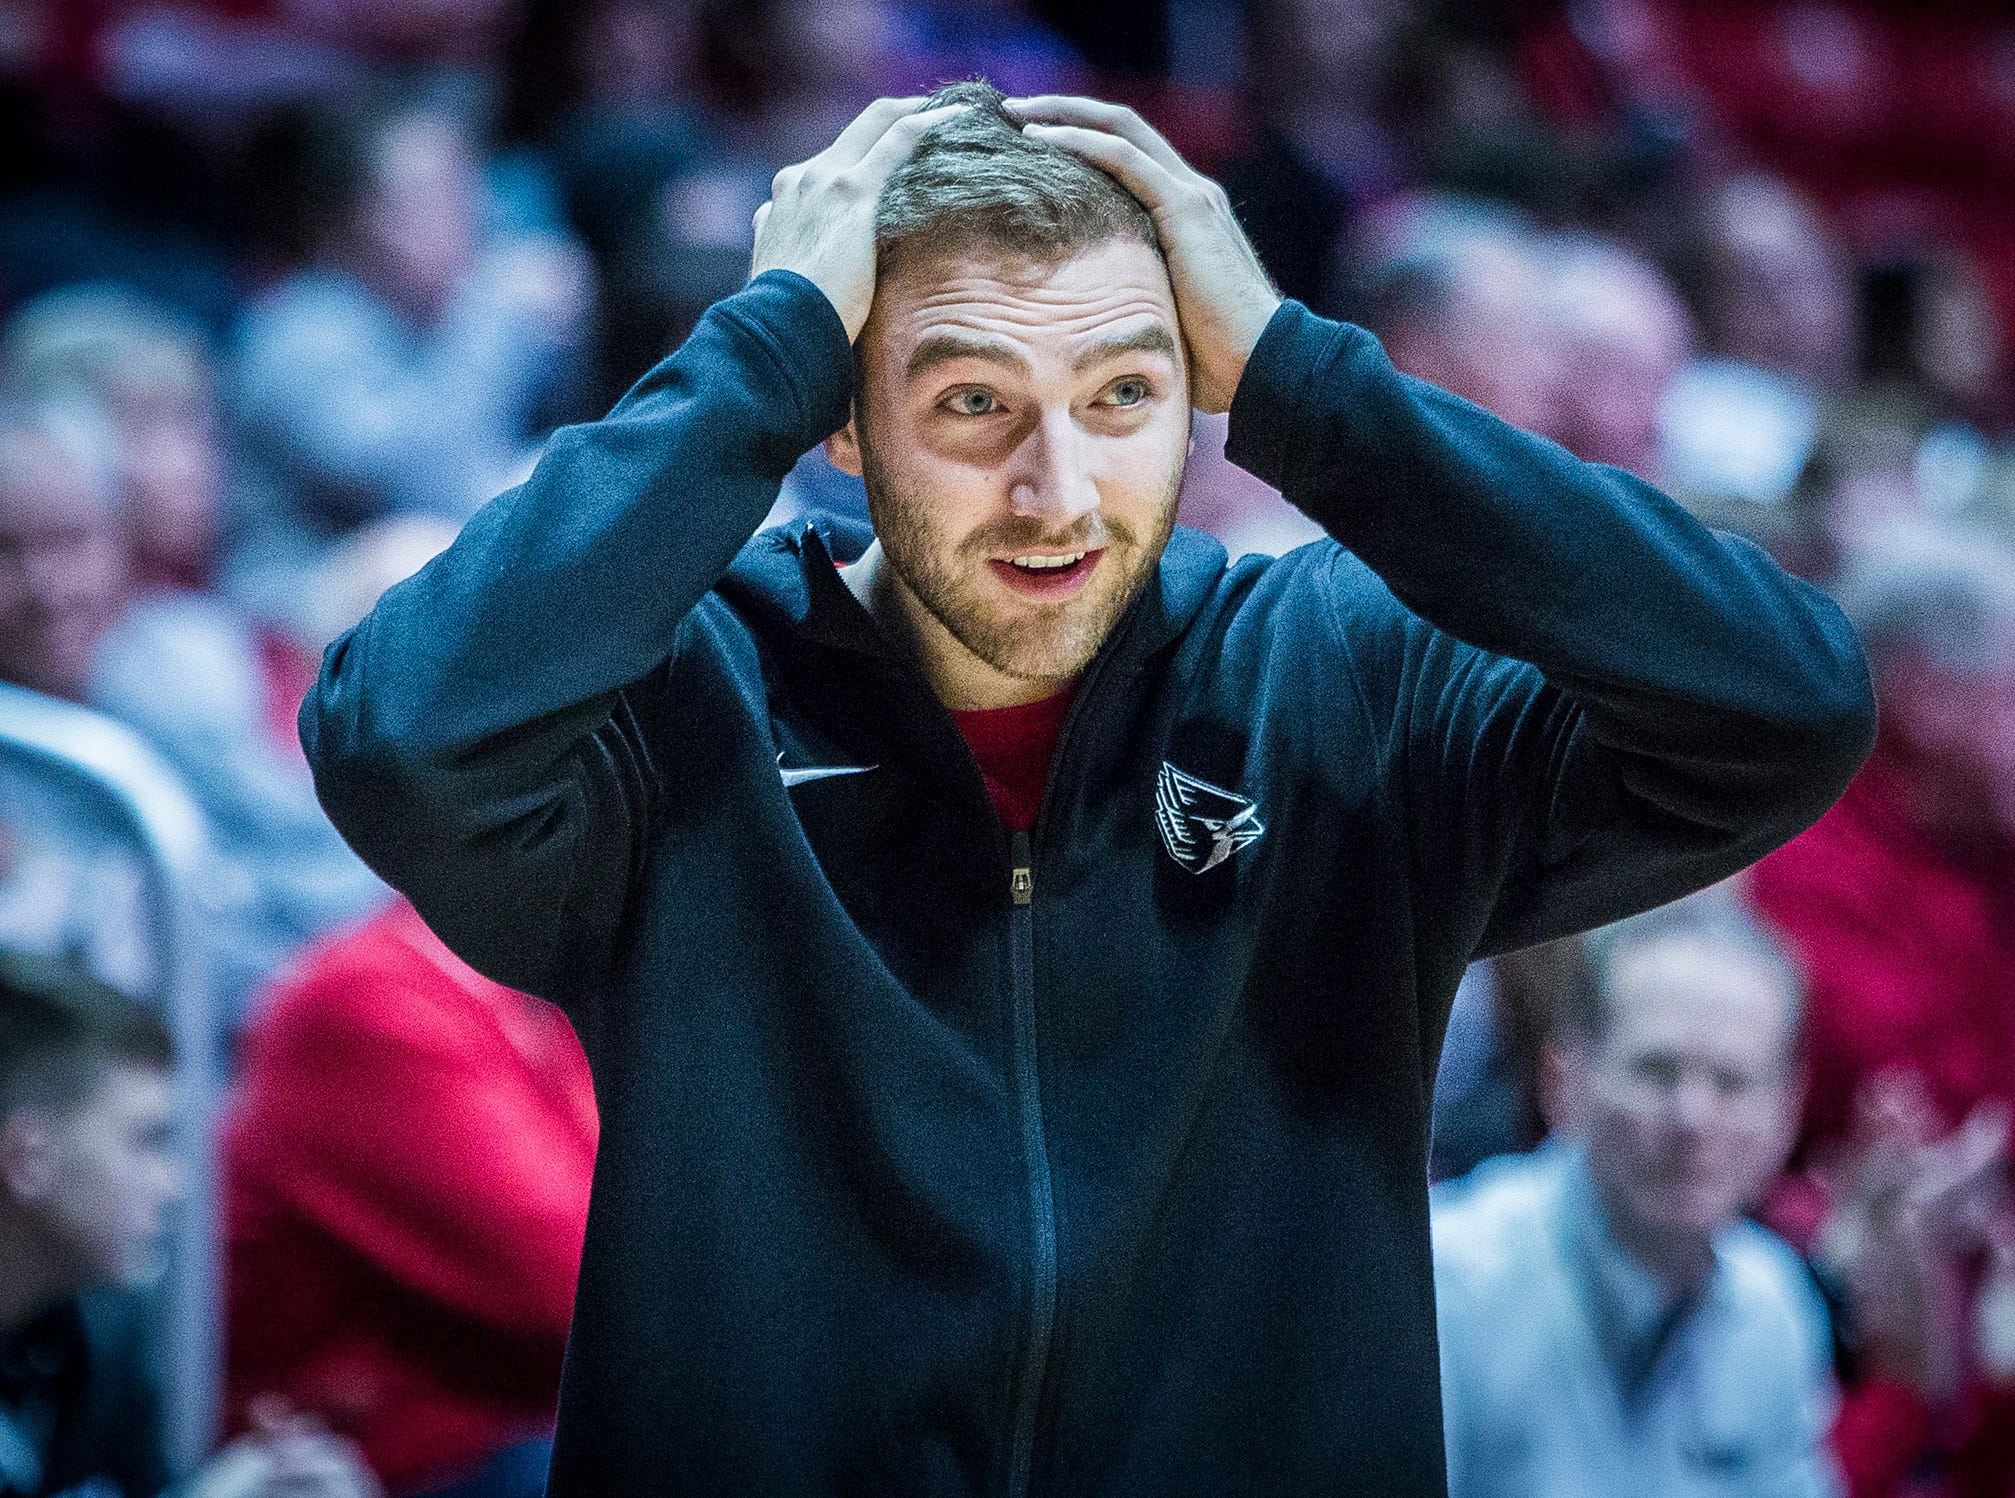 Ball State's Brachen Hazen is in disbelief during the game against Delaware State at Worthen Arena Saturday, Dec. 29, 2018.